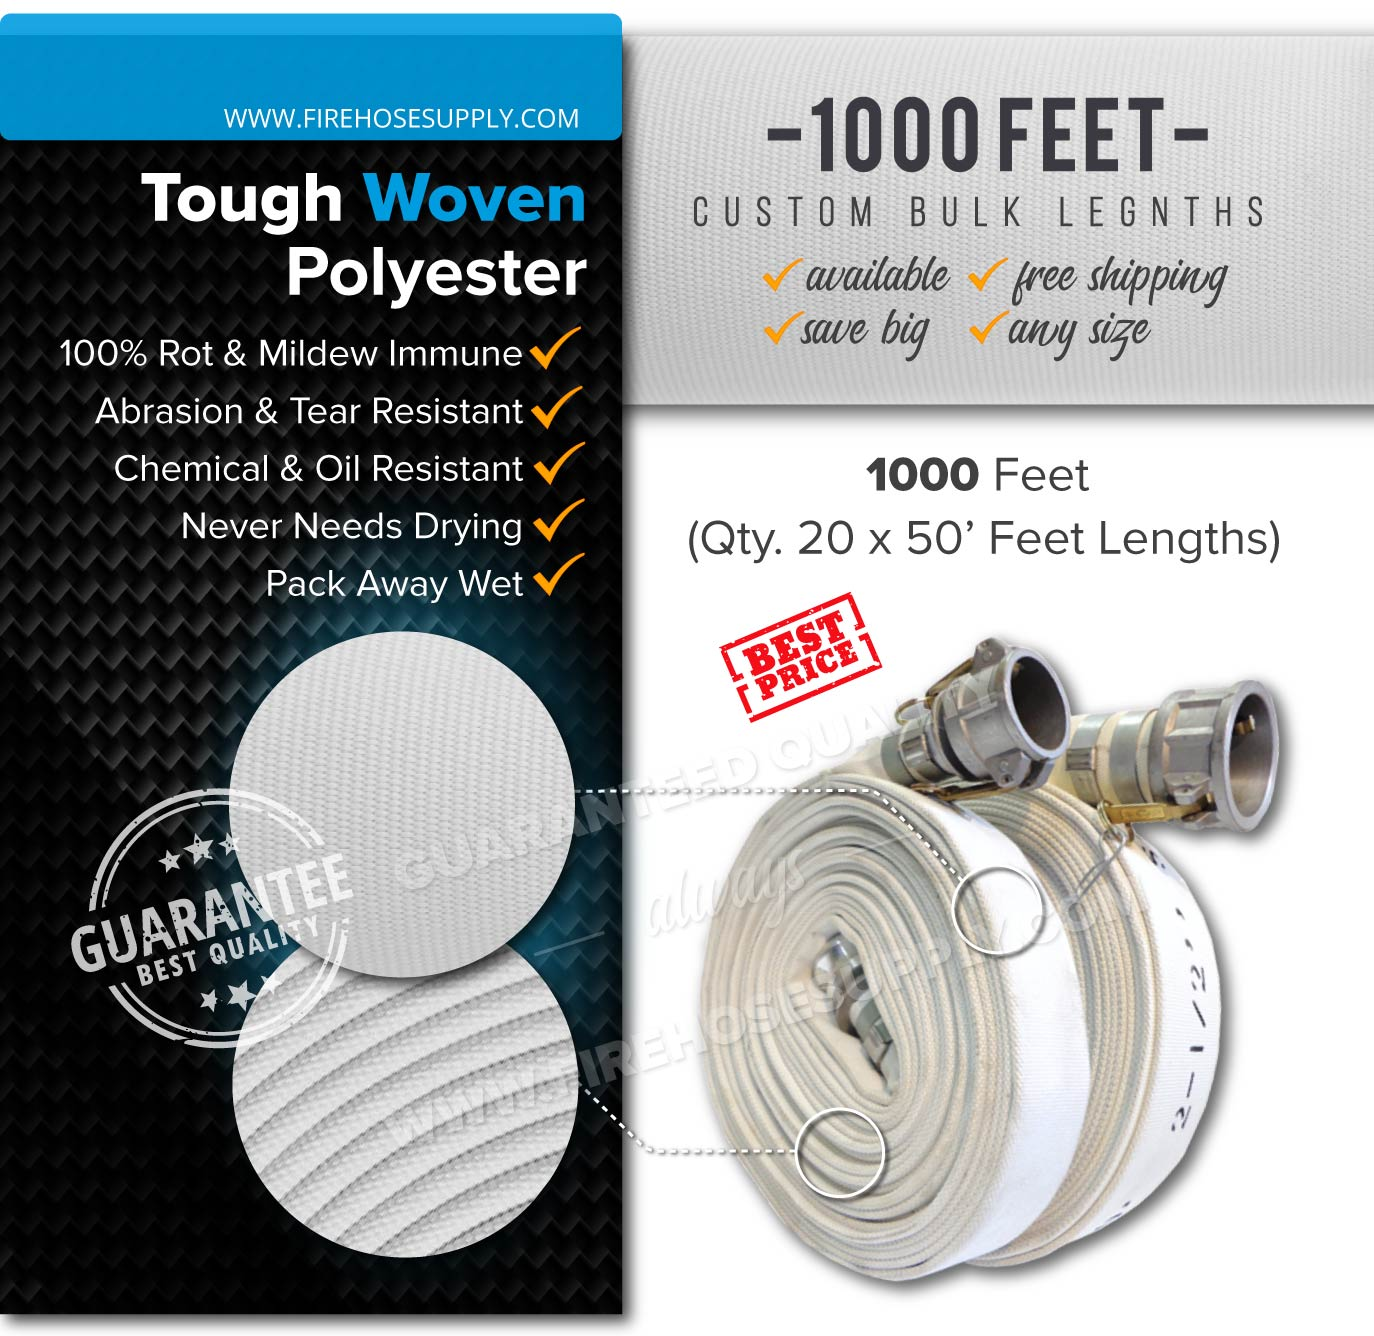 1.5 inch 1000 feet camlock quick connect hose (20 x 50) polyester bulk wholesale